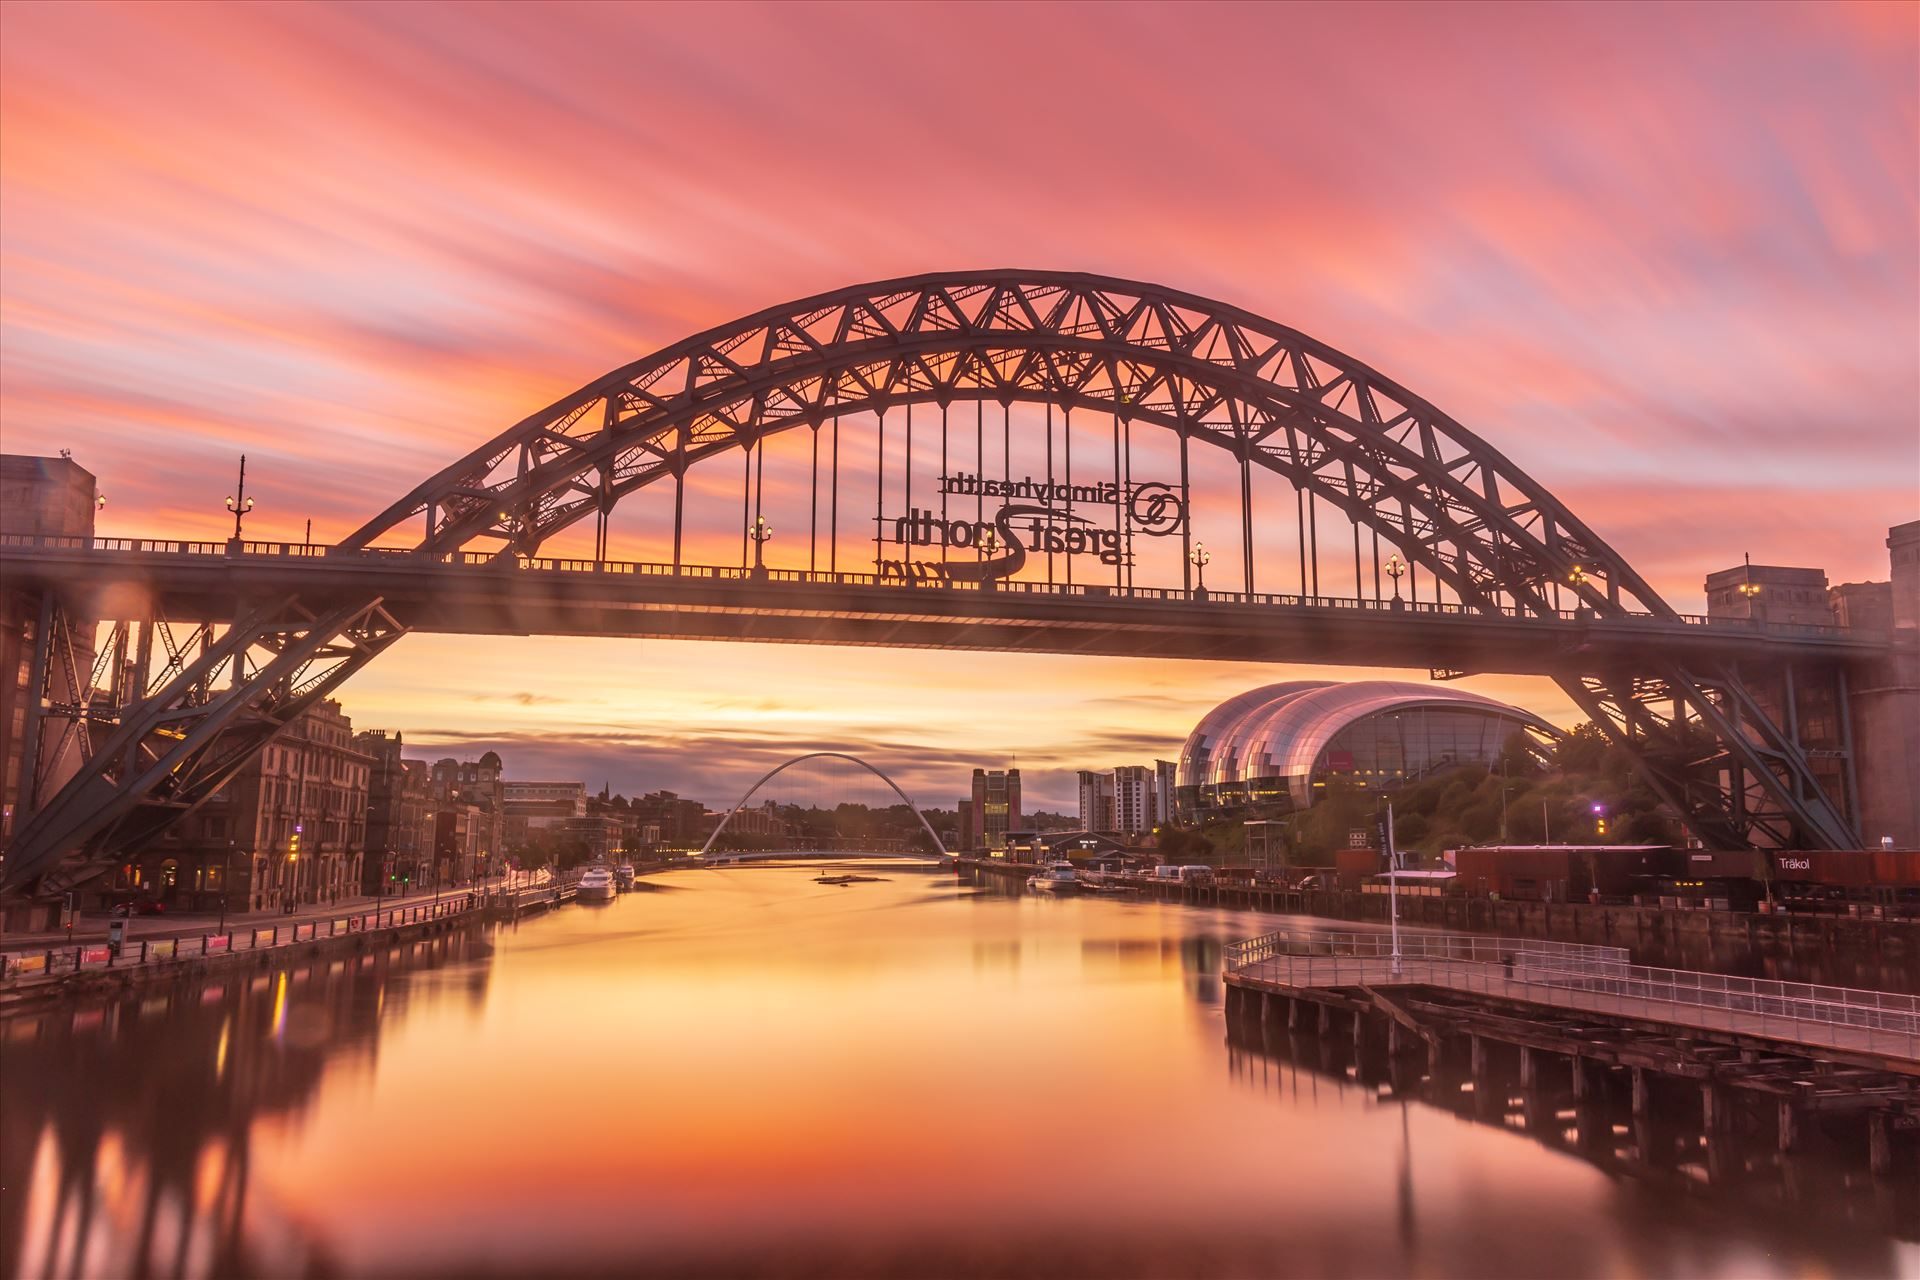 Sunrise on the Tyne bridge, Newcastle - The exposure time on this one was 195 seconds to create the streaking effect in the clouds. by philreay